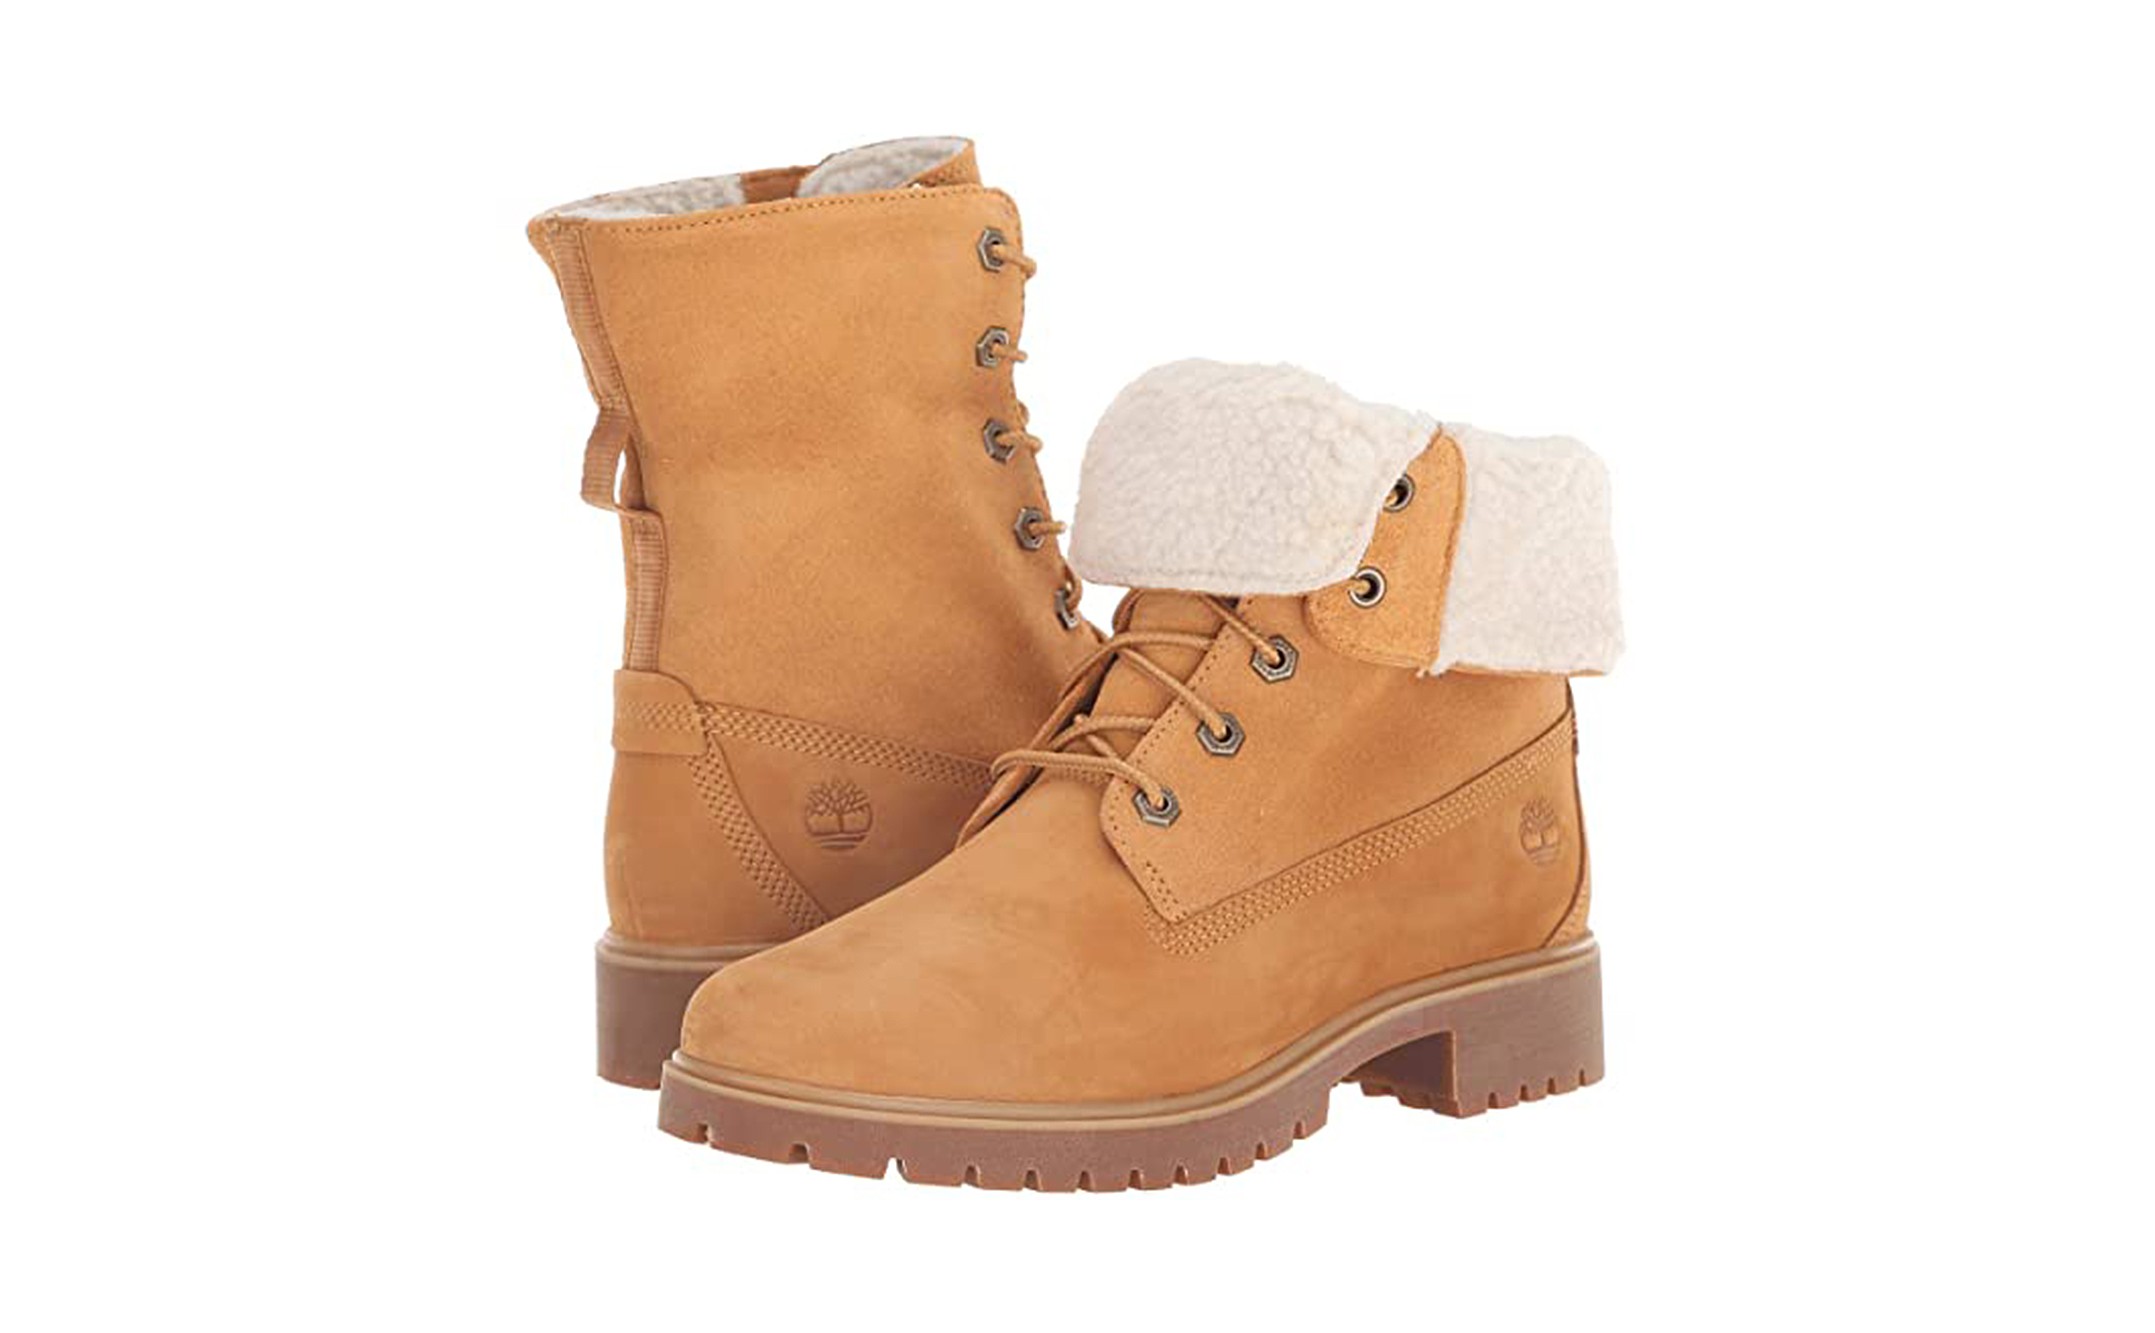 Timberland Waterproof Boots Are